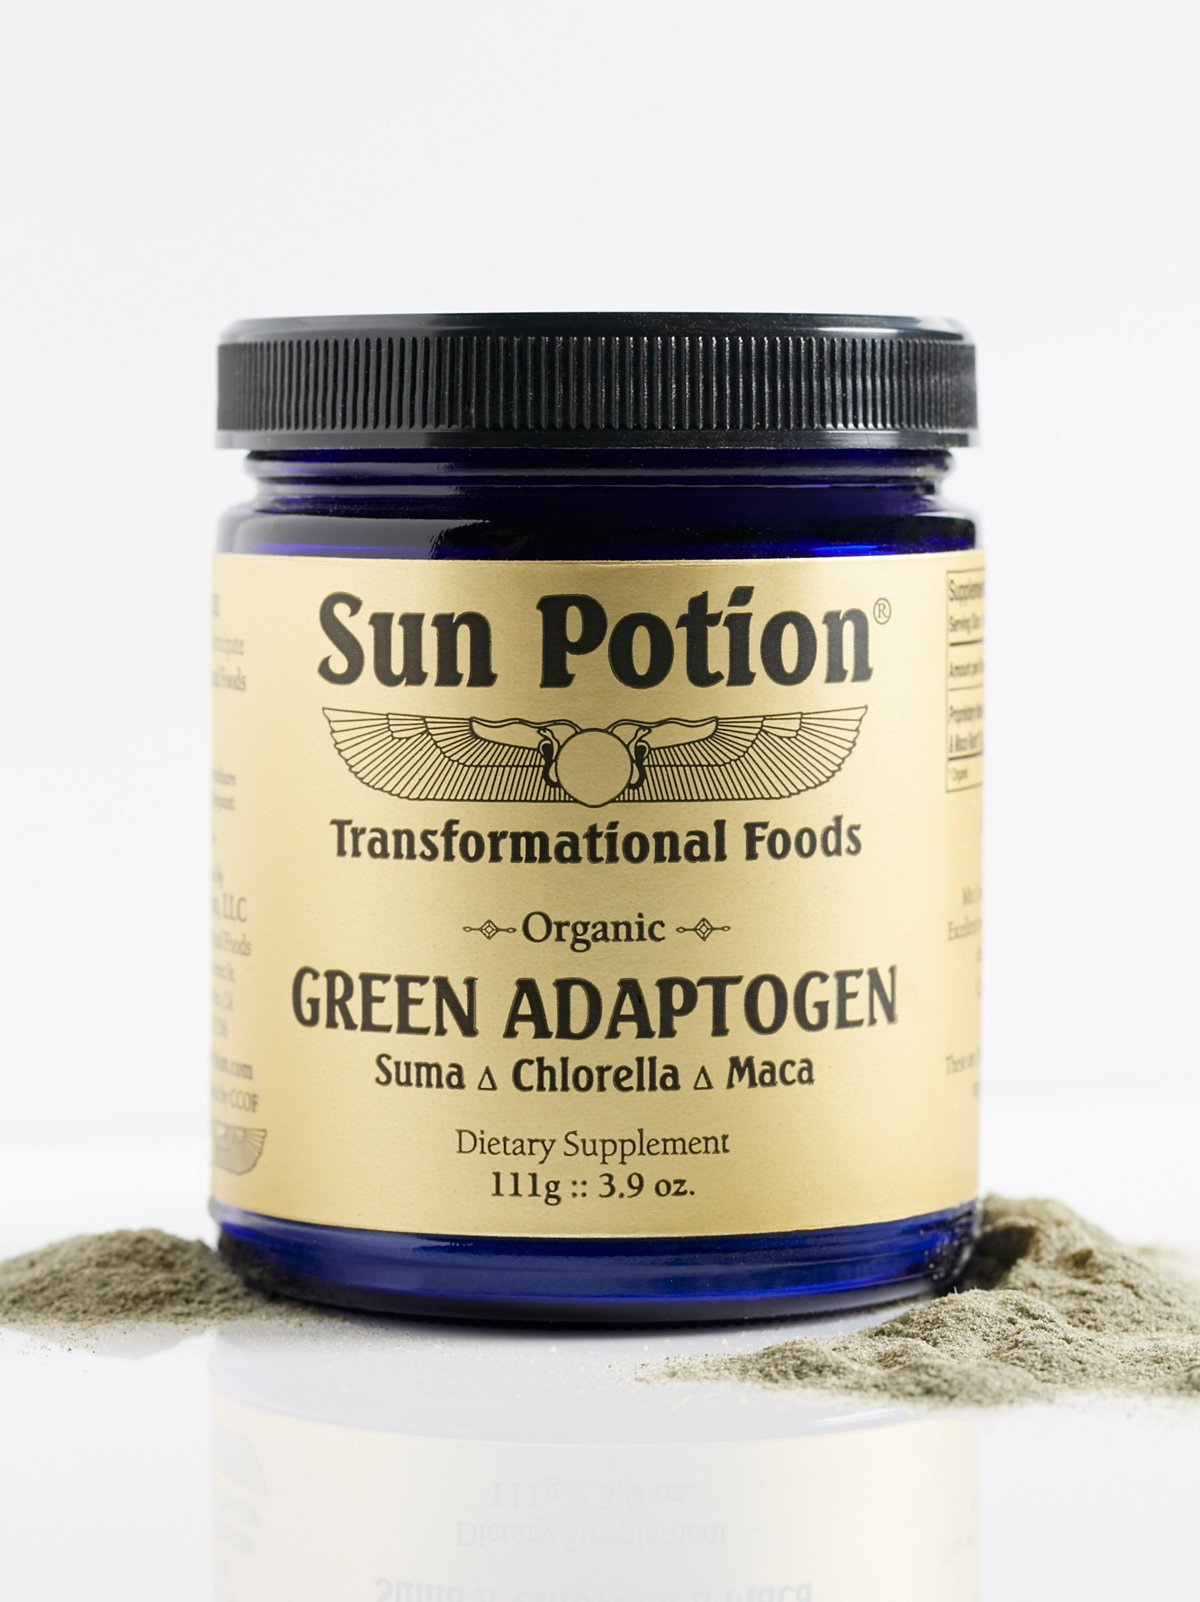 Green Adaptogen Supplement